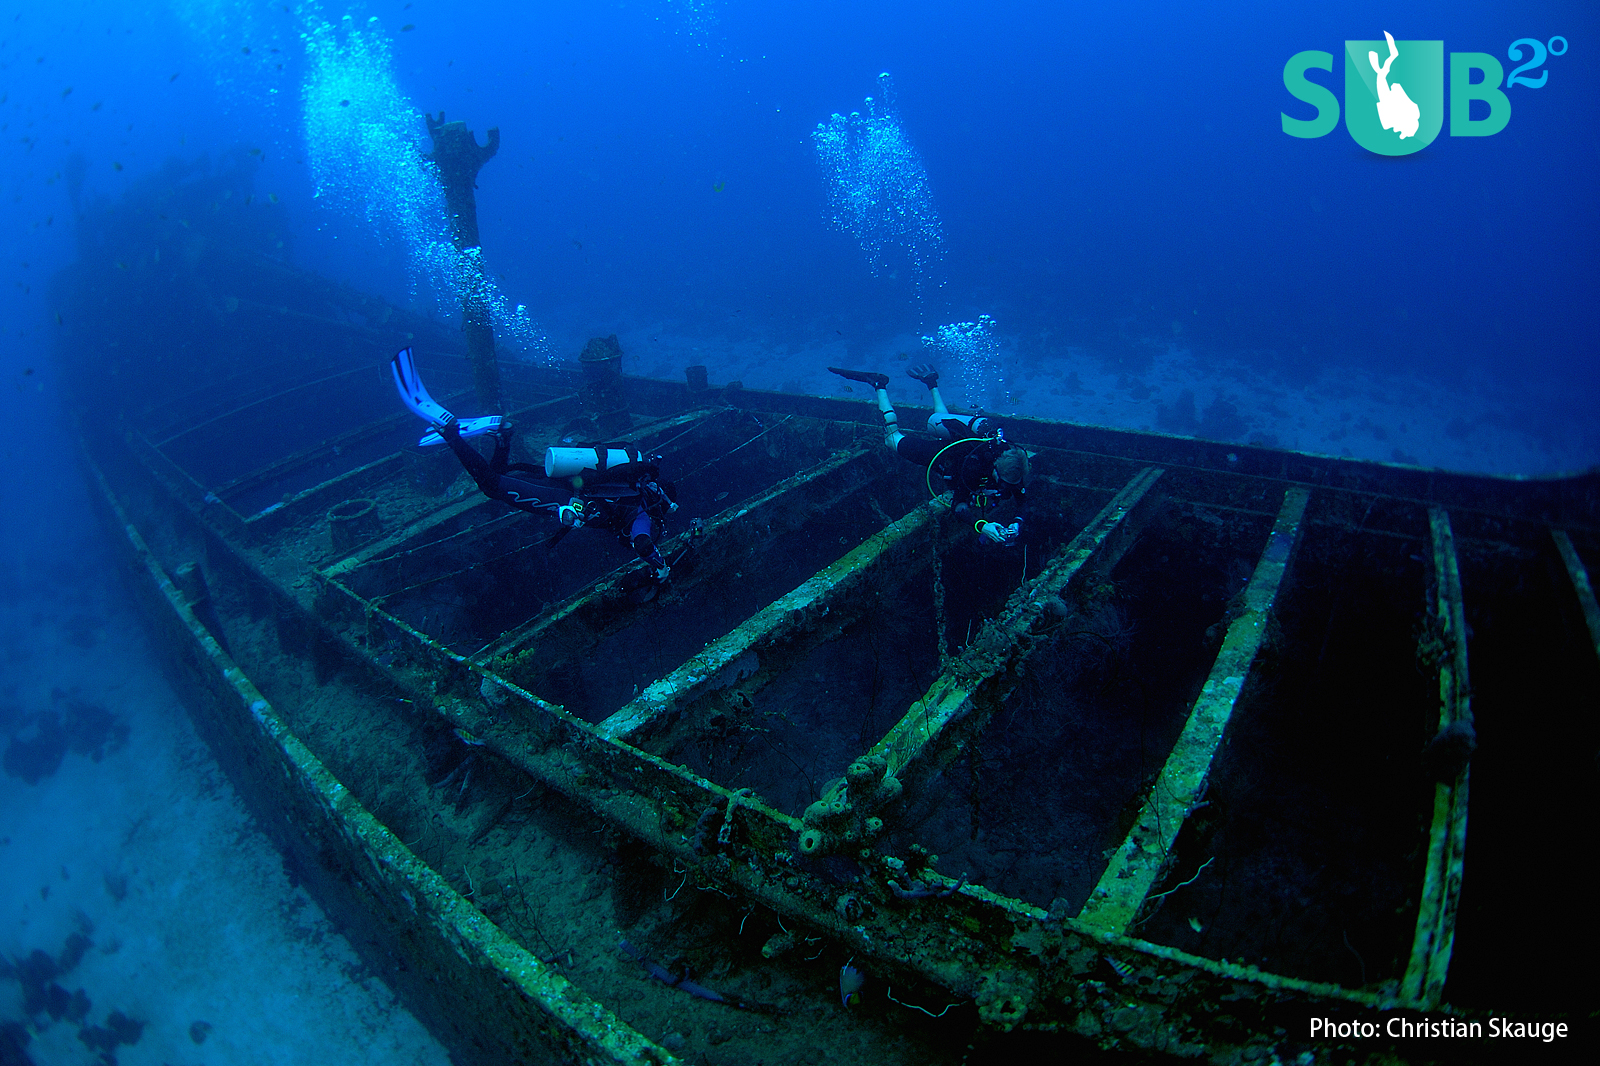 A wreck shows itself in blue and green colors at depth, unless you bring an artificial light source.